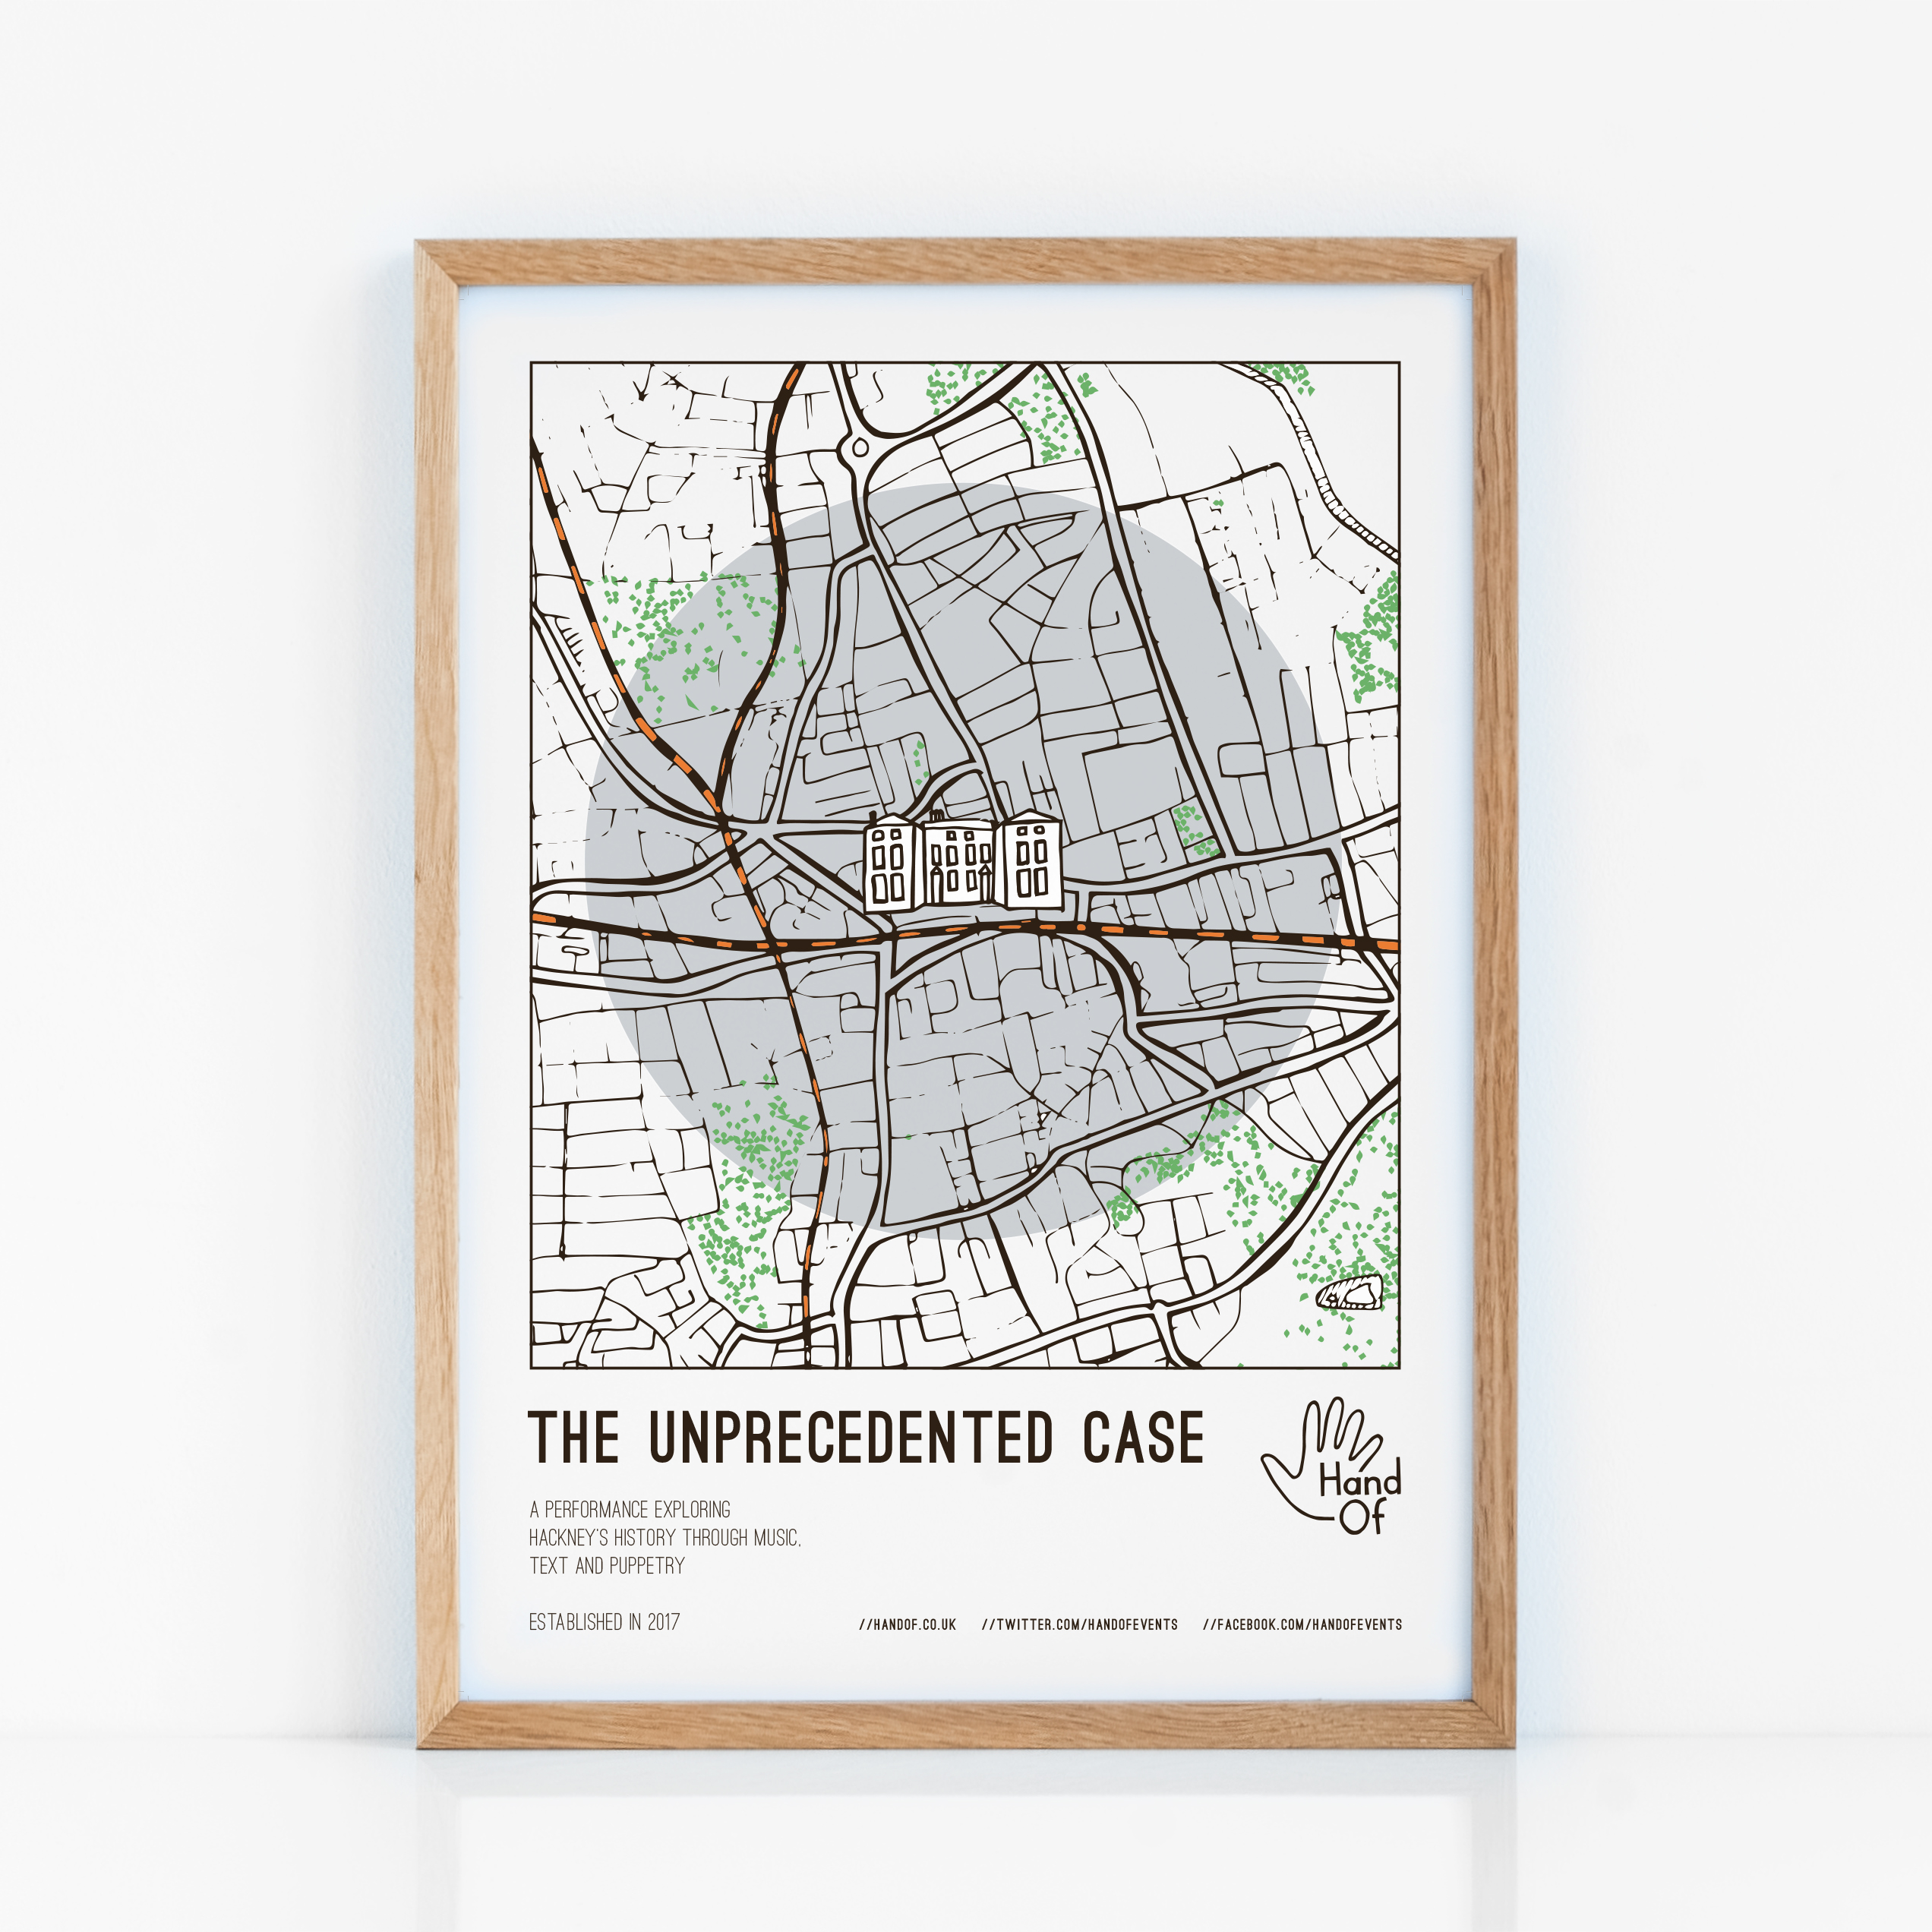 The Unprecedented Case poster